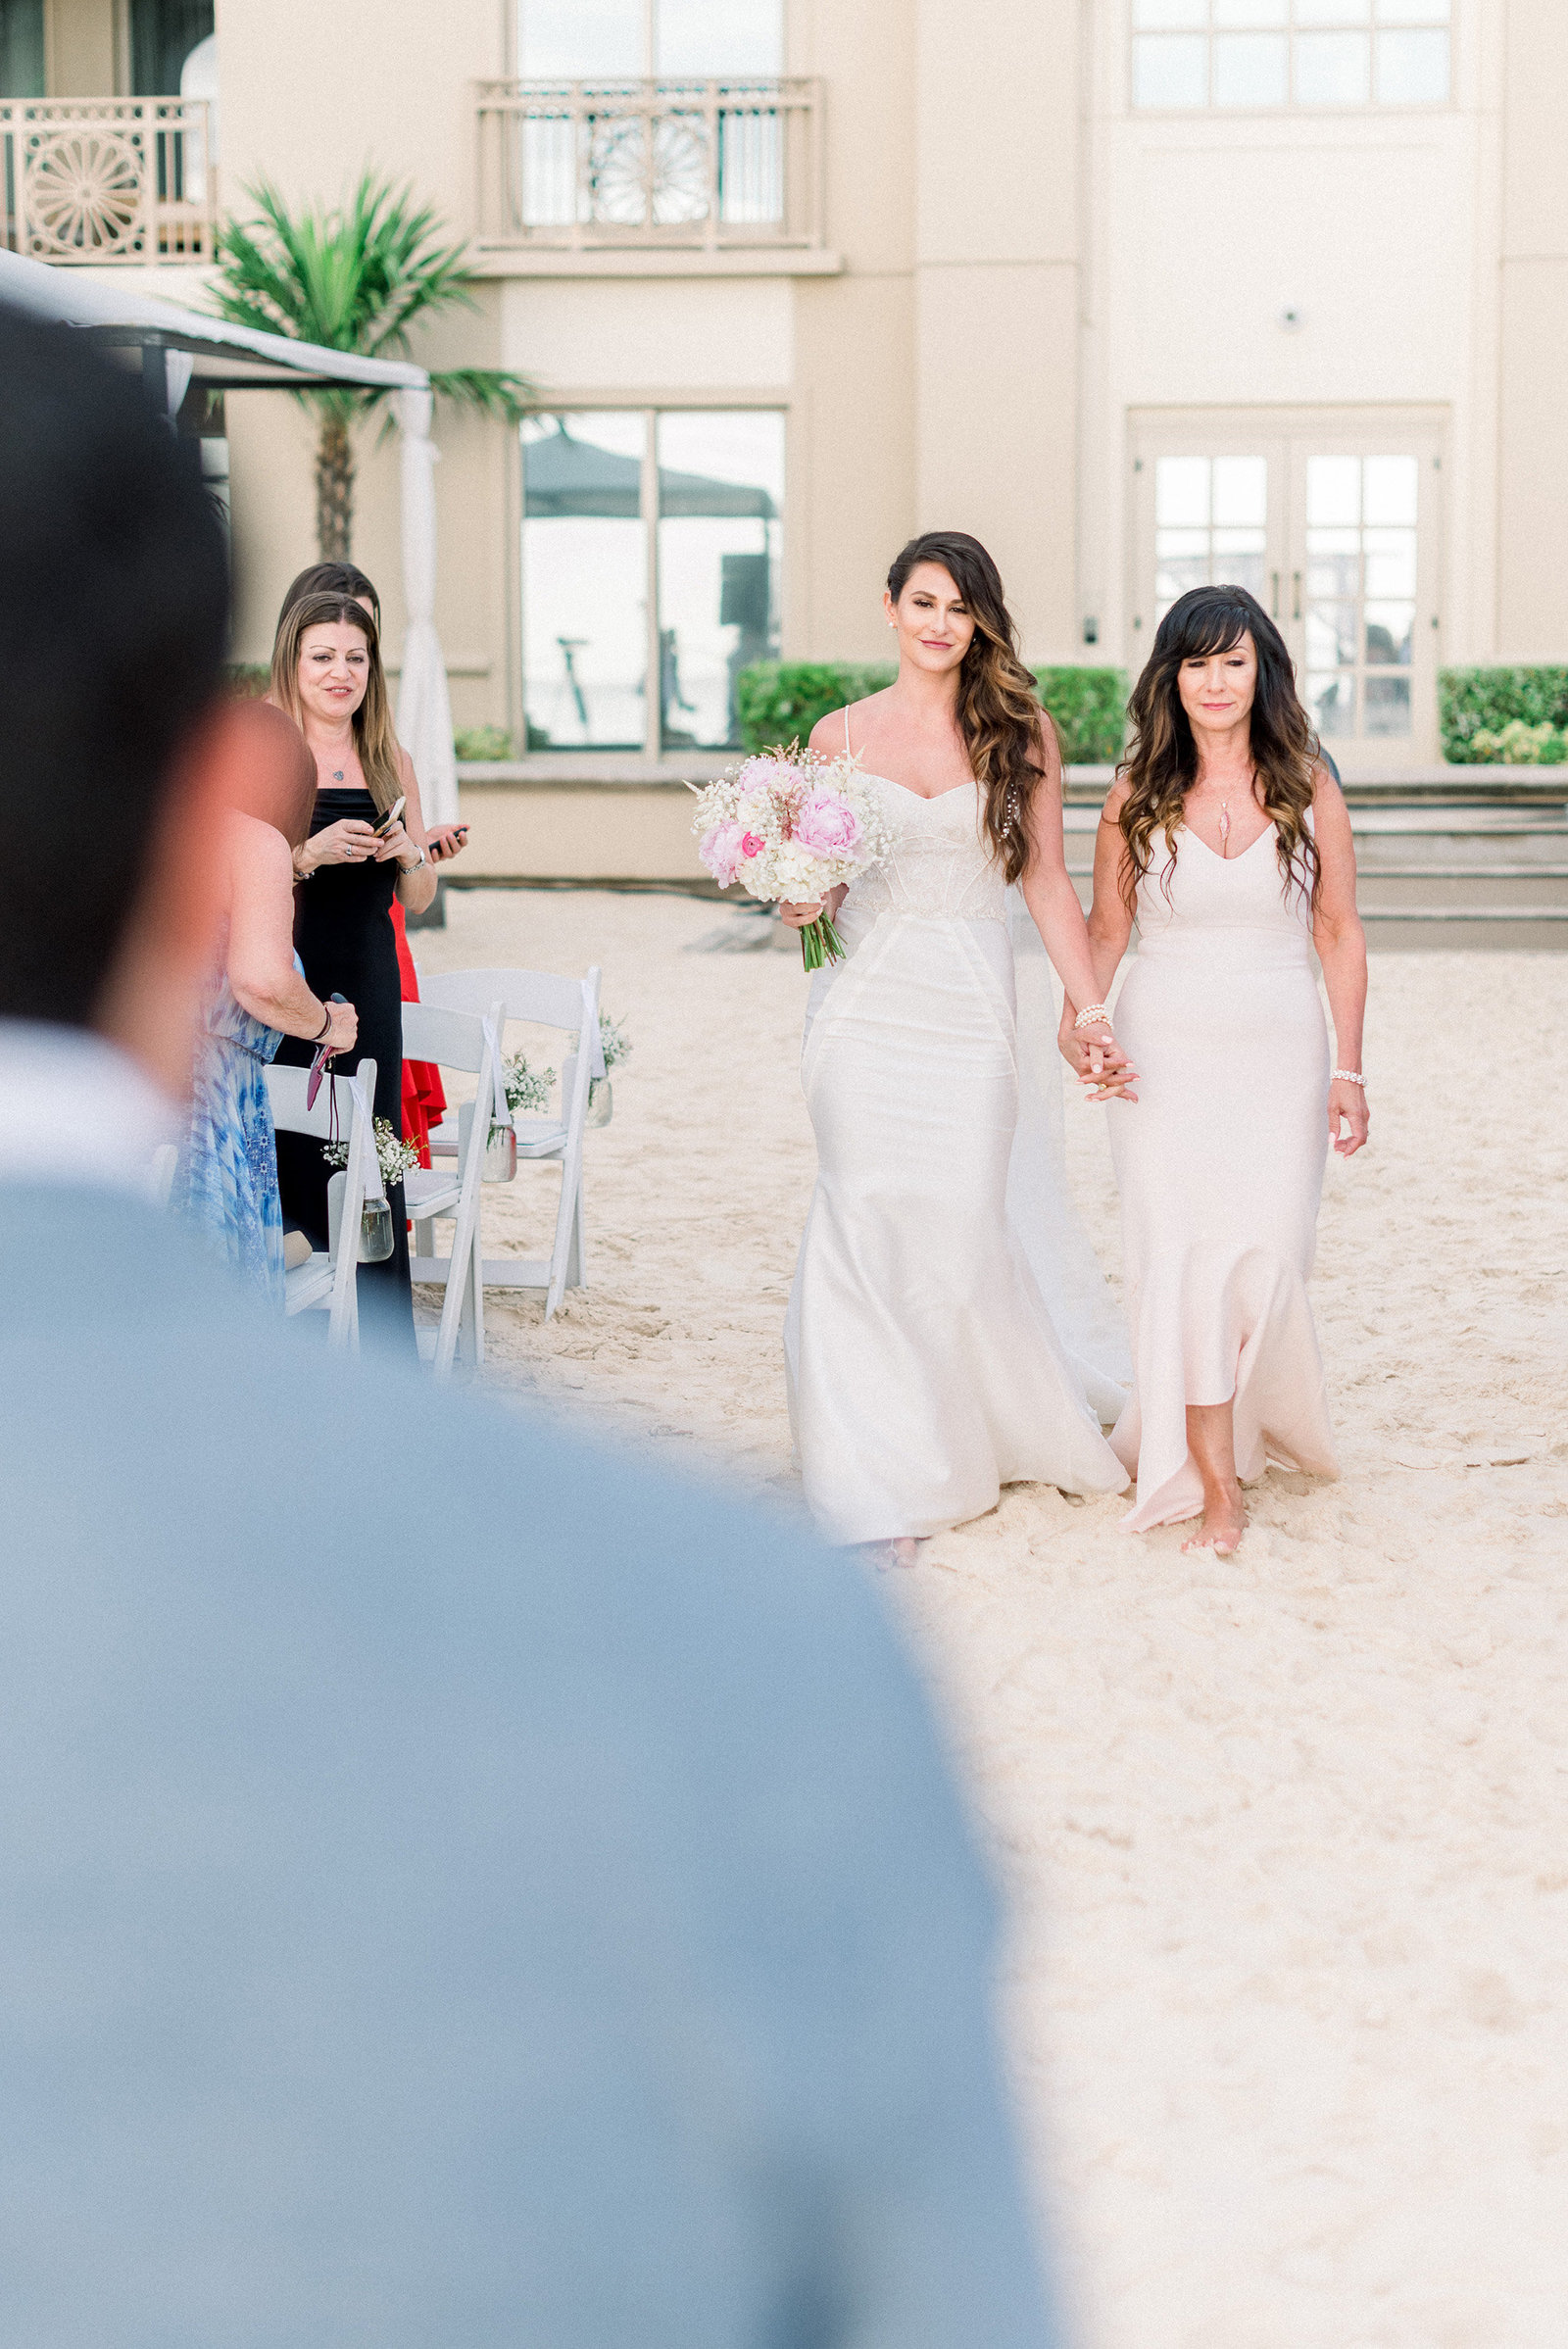 20180512-Pura-Soul-Photo-Ritz-Grand-Cayman-Wedding-81